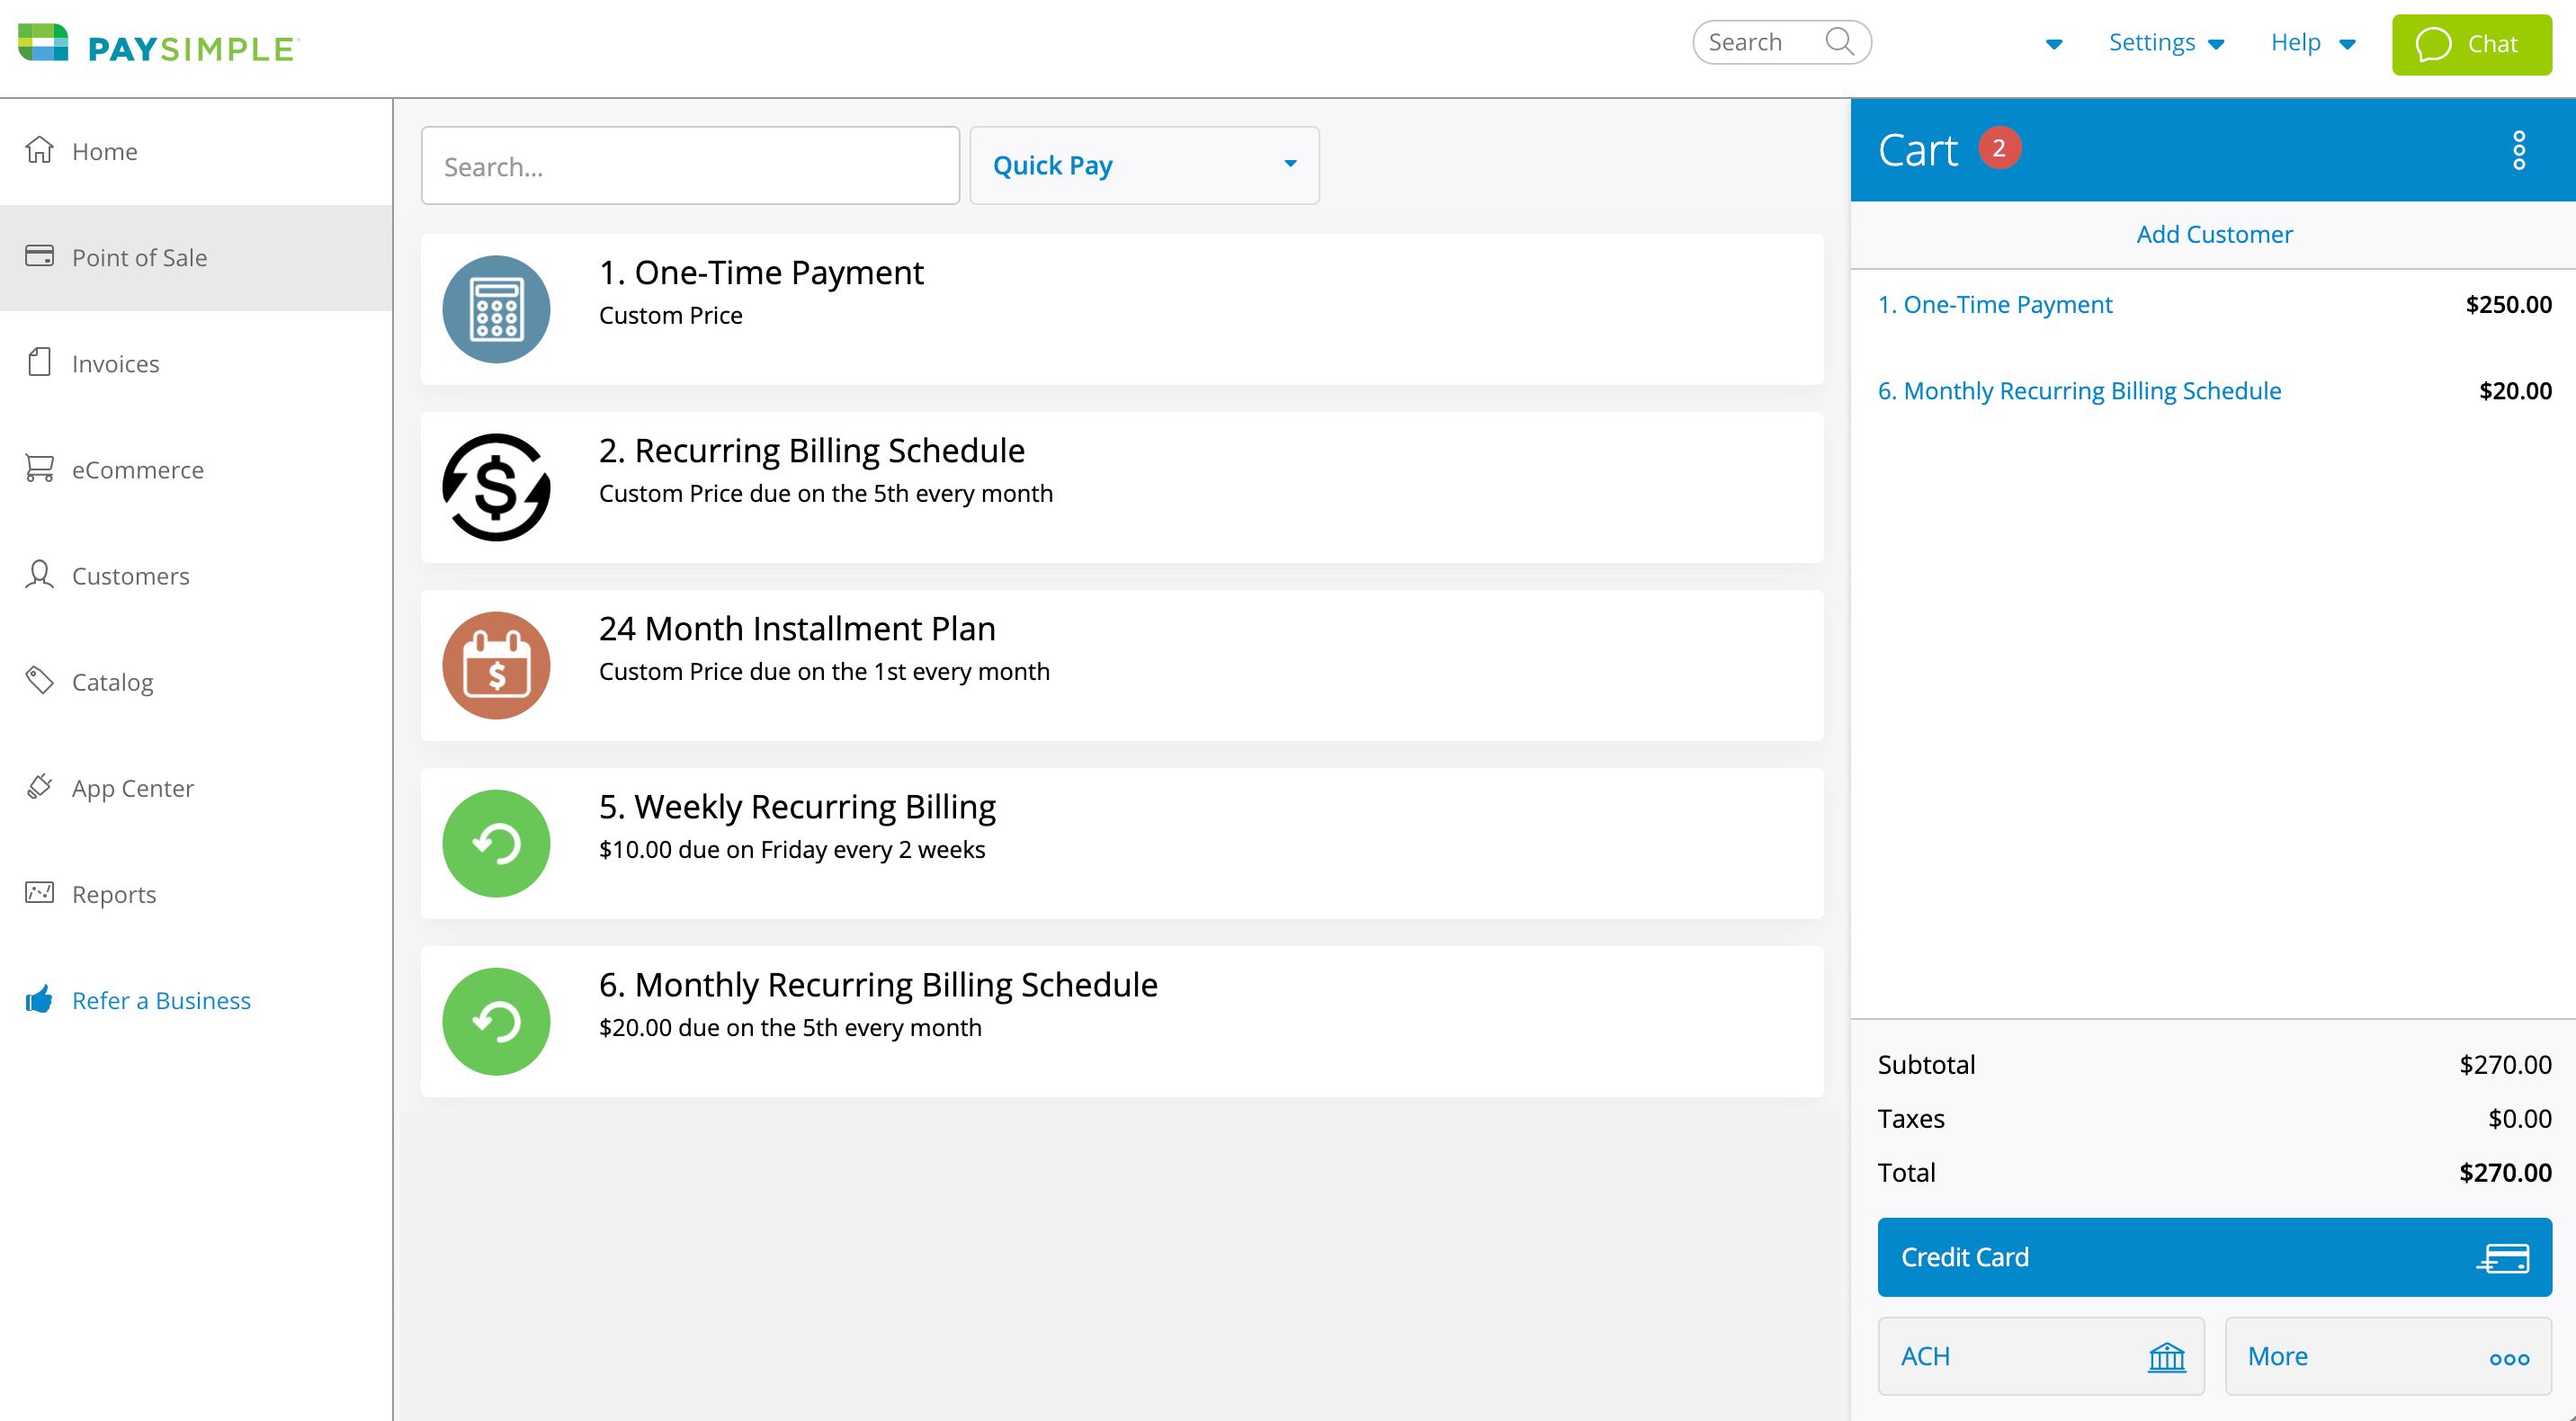 Process payments over the phone or in person with Point of Sale